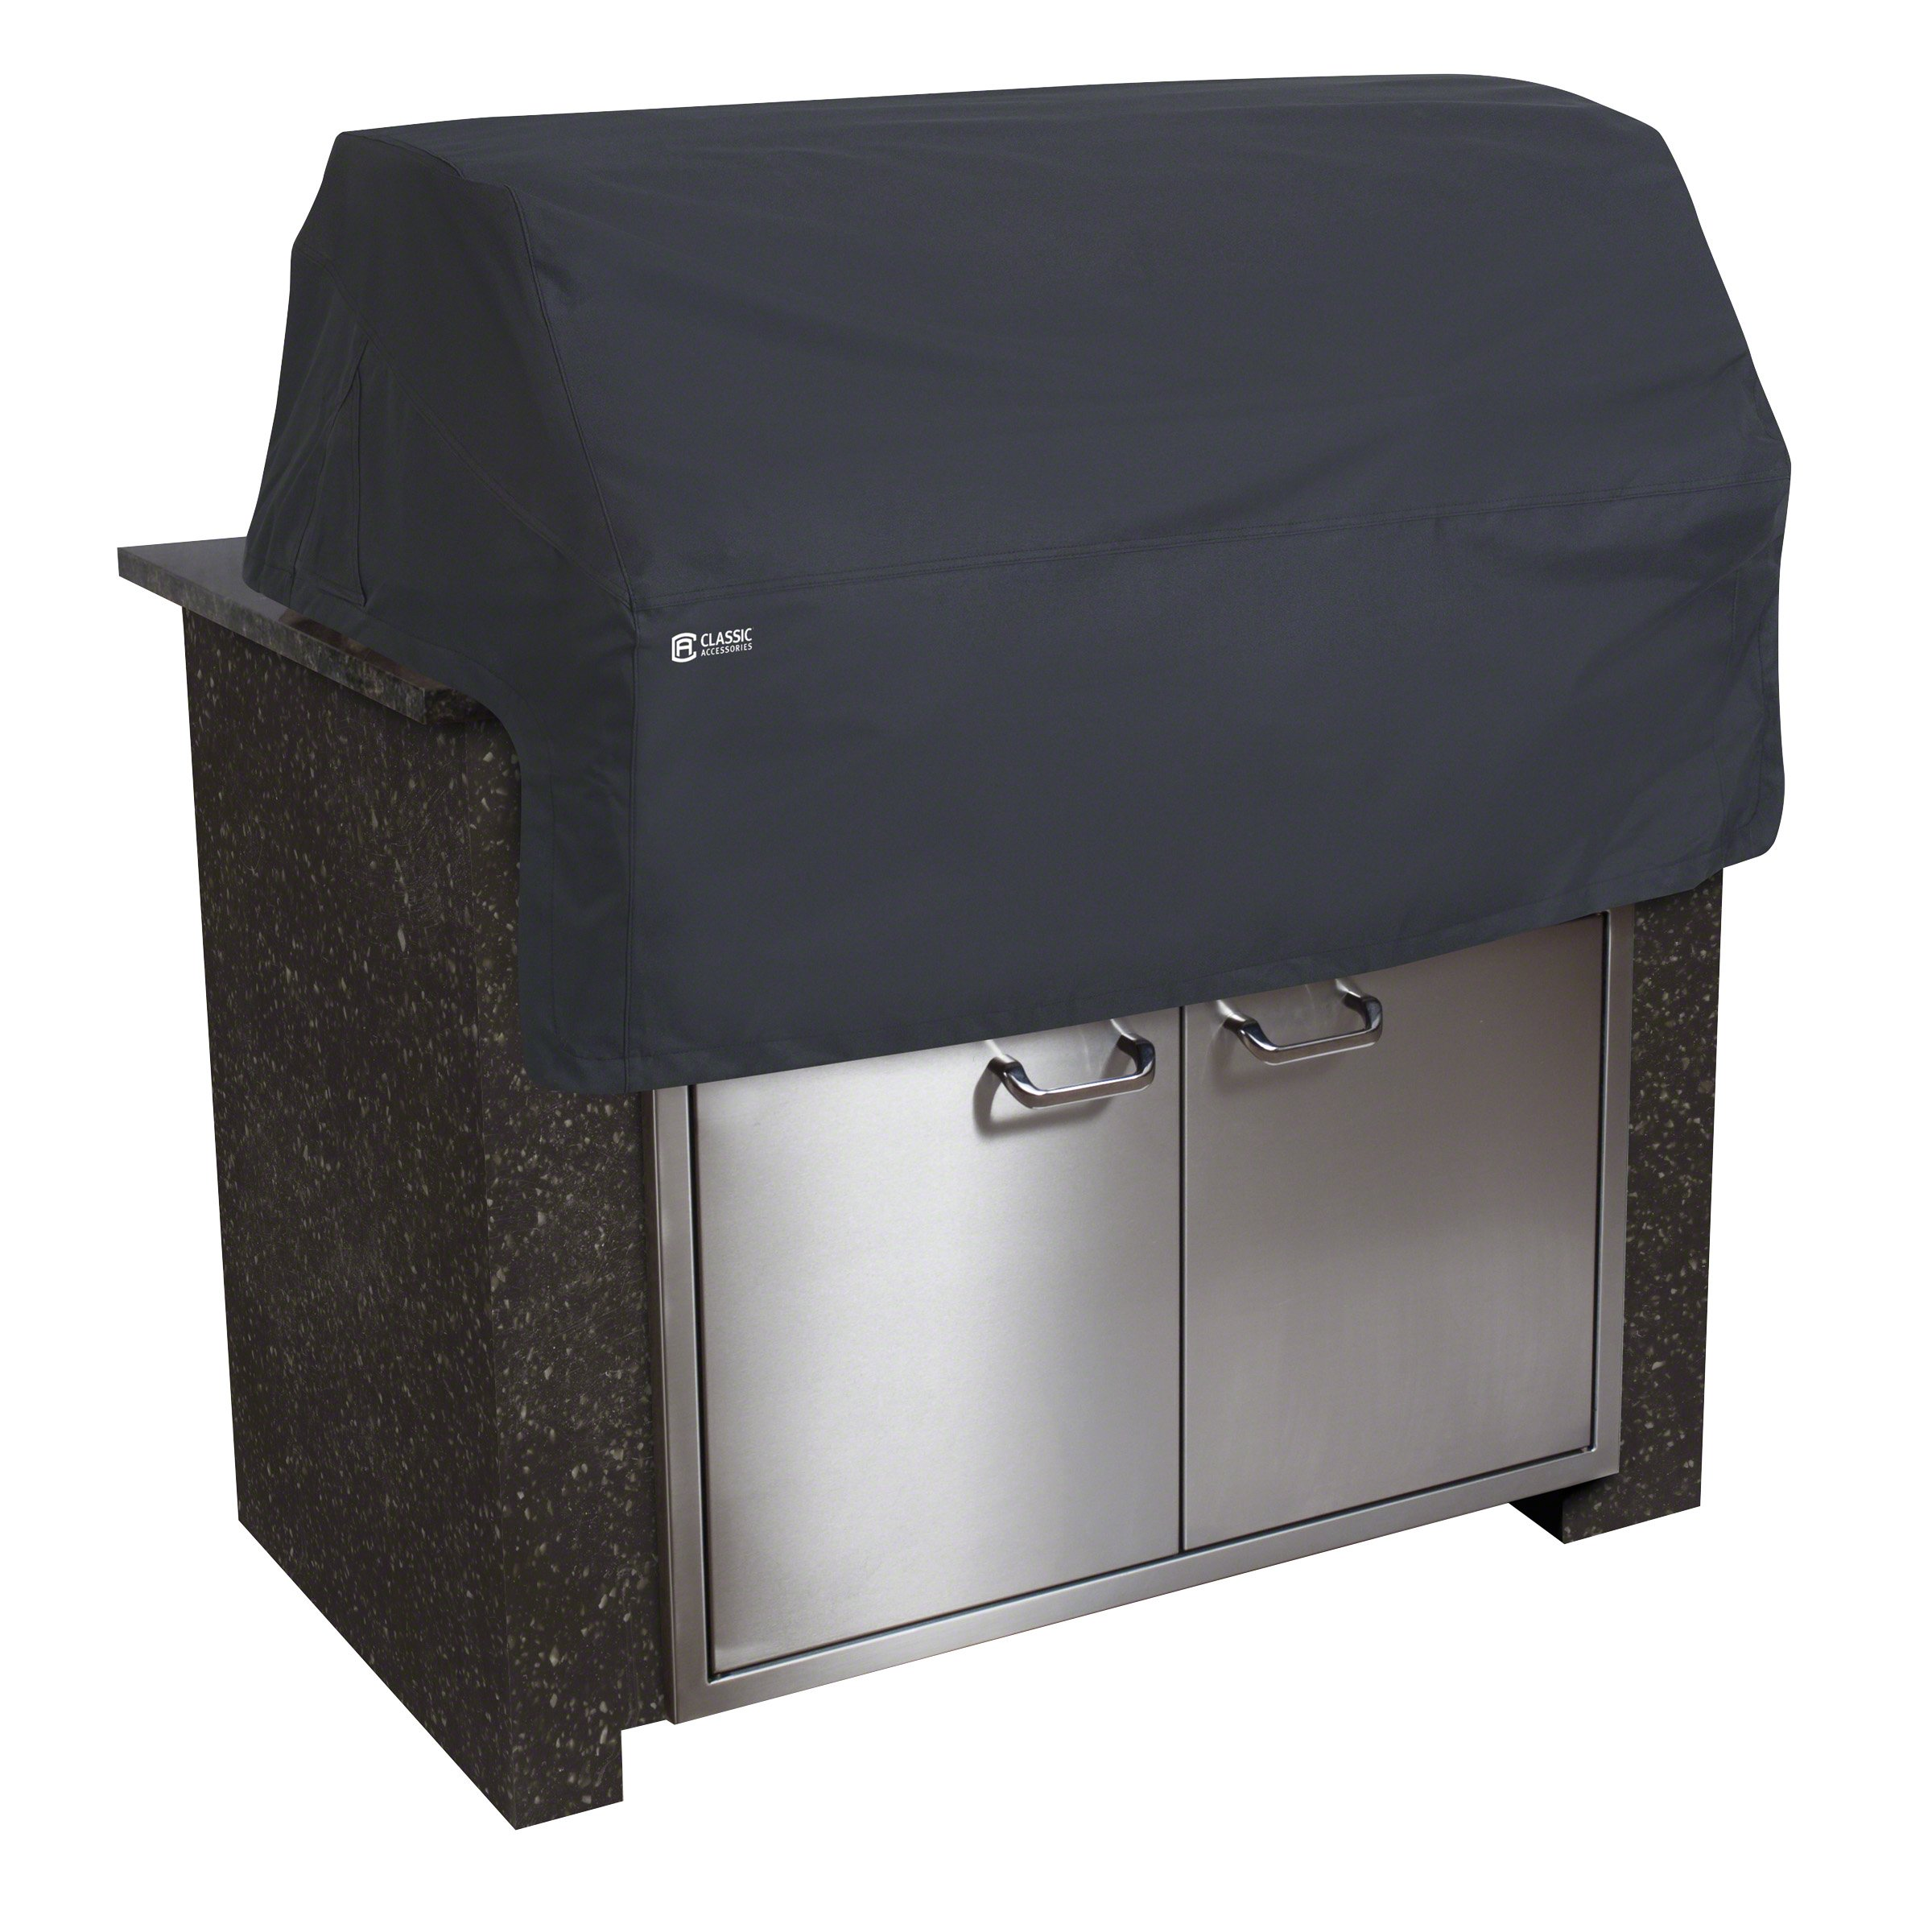 Classic Accessories Water-Resistant 57 Inch Built-In BBQ Grill Top Cover